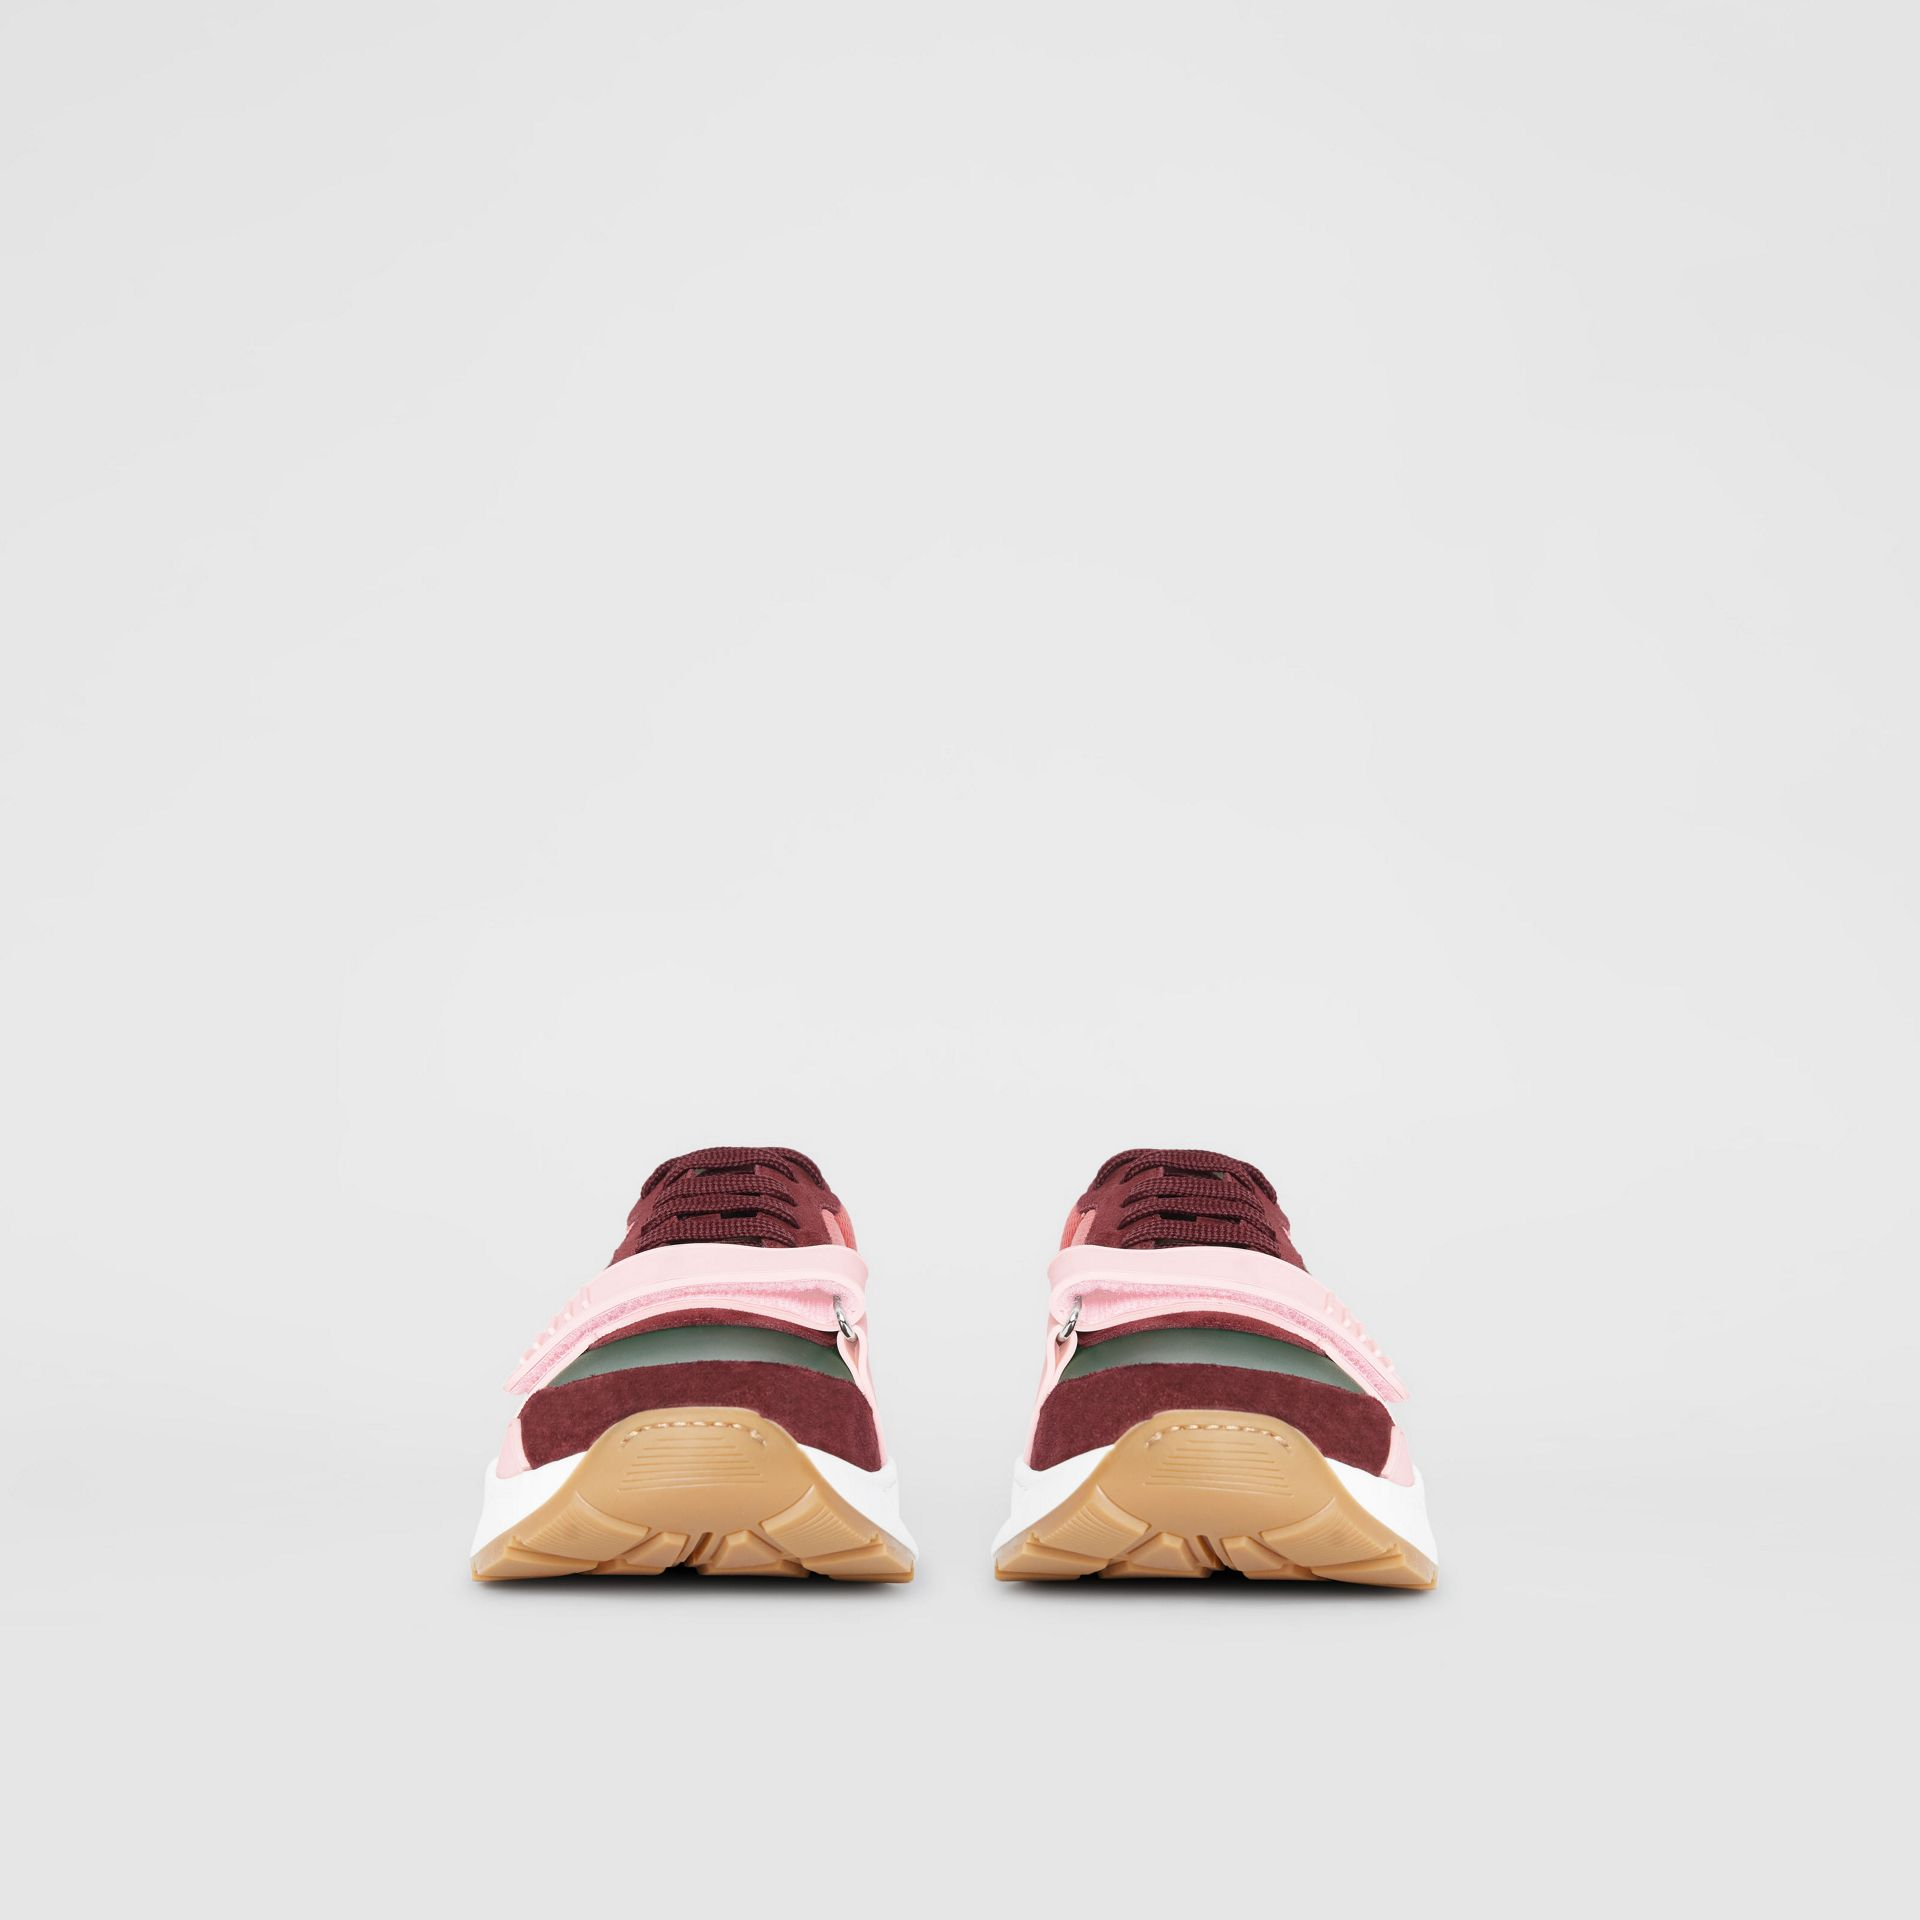 Colour Block Suede and Neoprene Sneakers in Bordeaux/khaki - Men | Burberry - gallery image 3